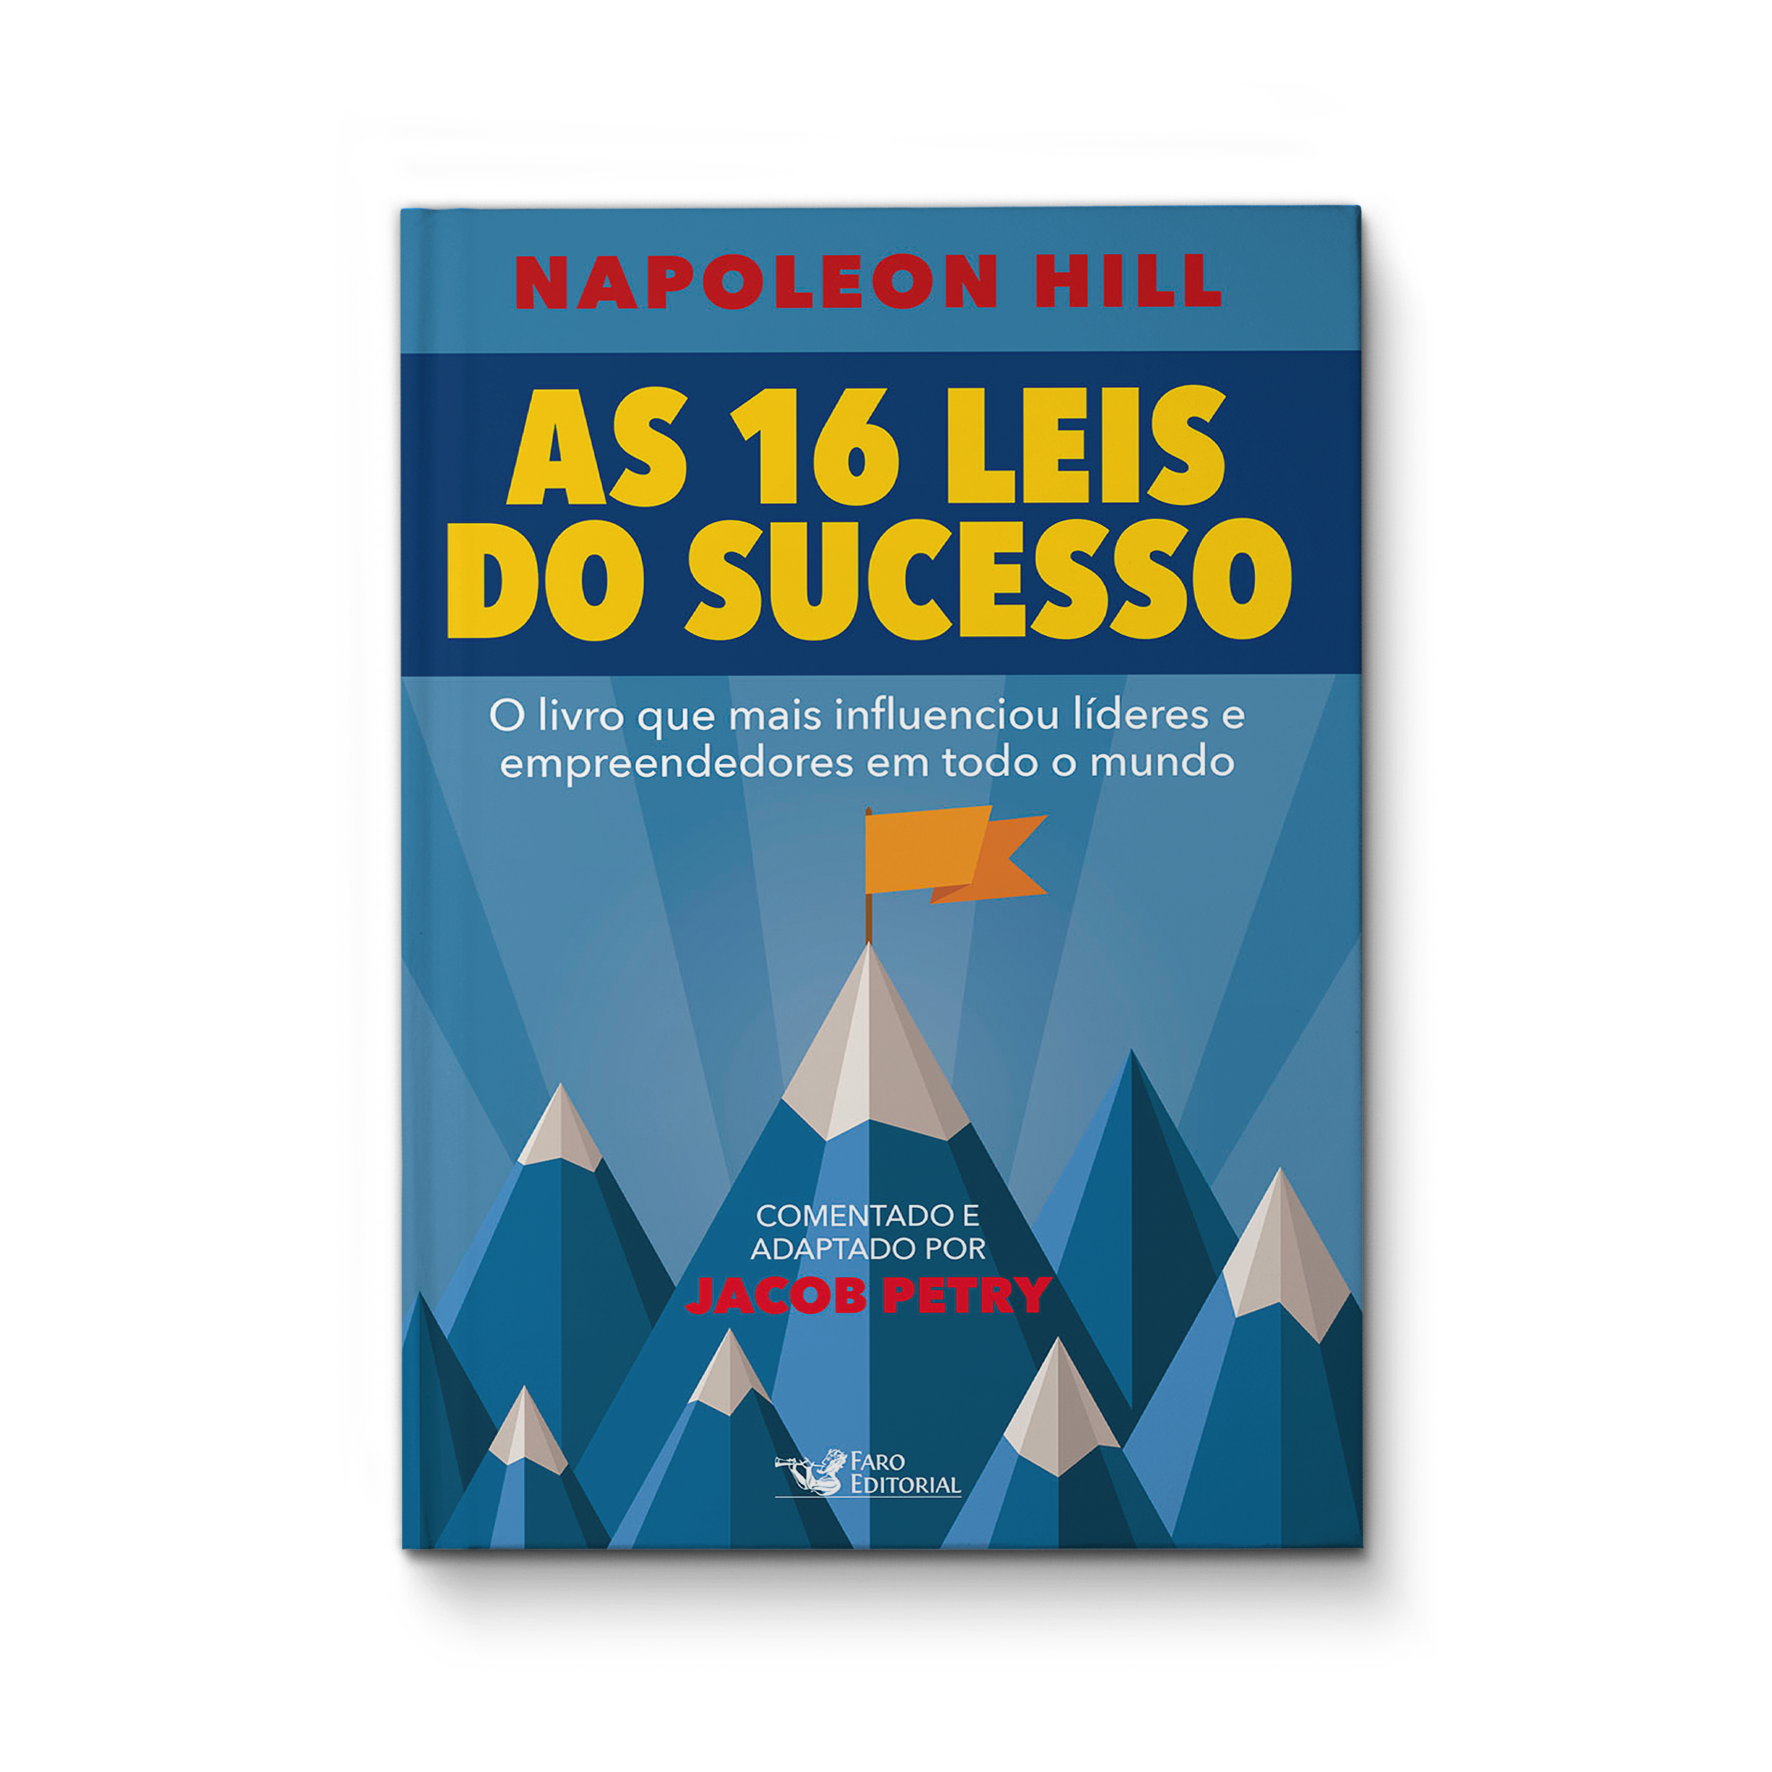 As 16 leis do sucesso – Napoleon Hill | Jacob Petry